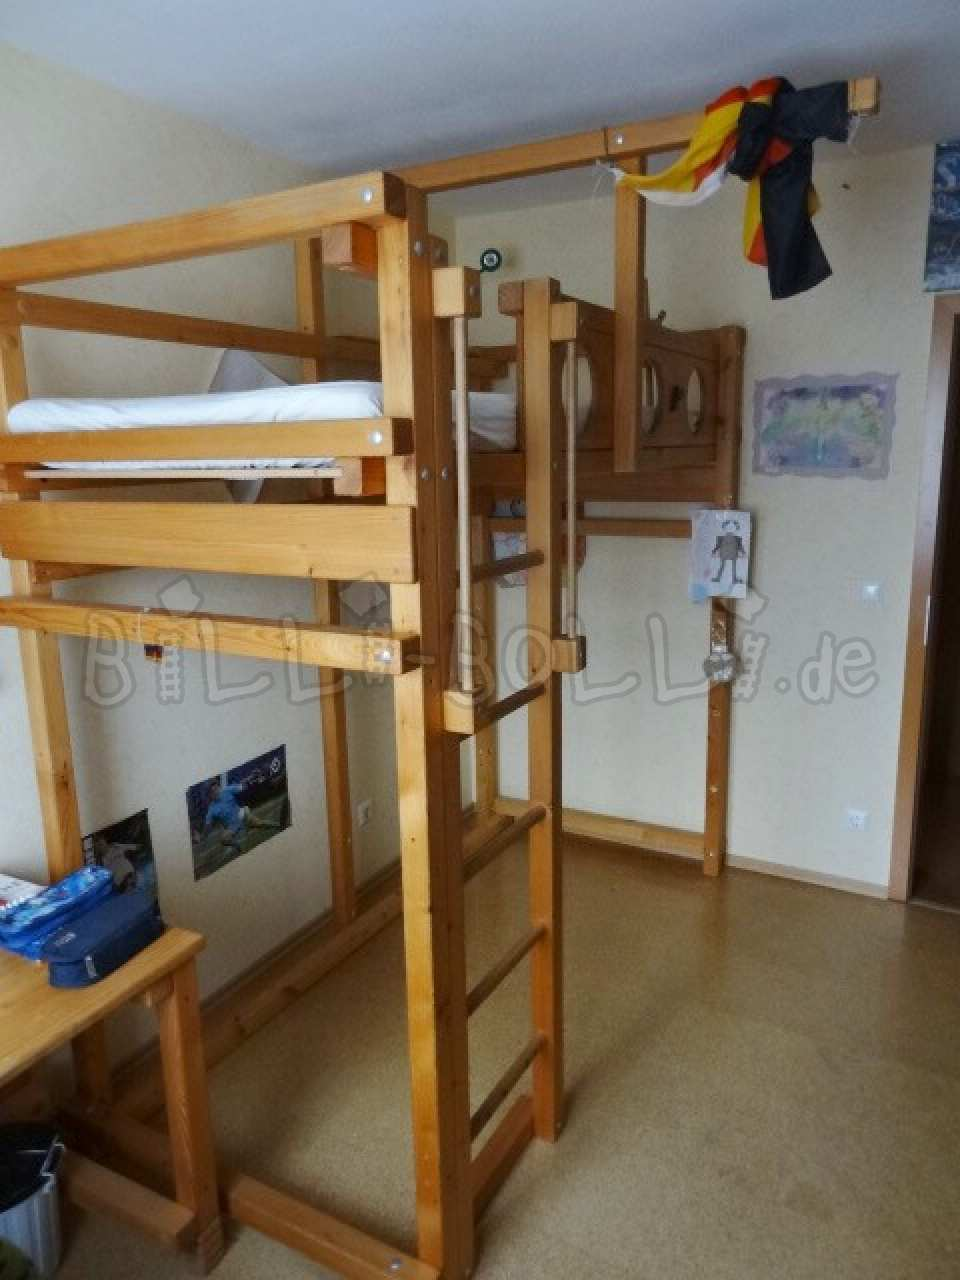 Collating high bed 90 x 200 cm, spruce oil-waxed (second hand loft bed)